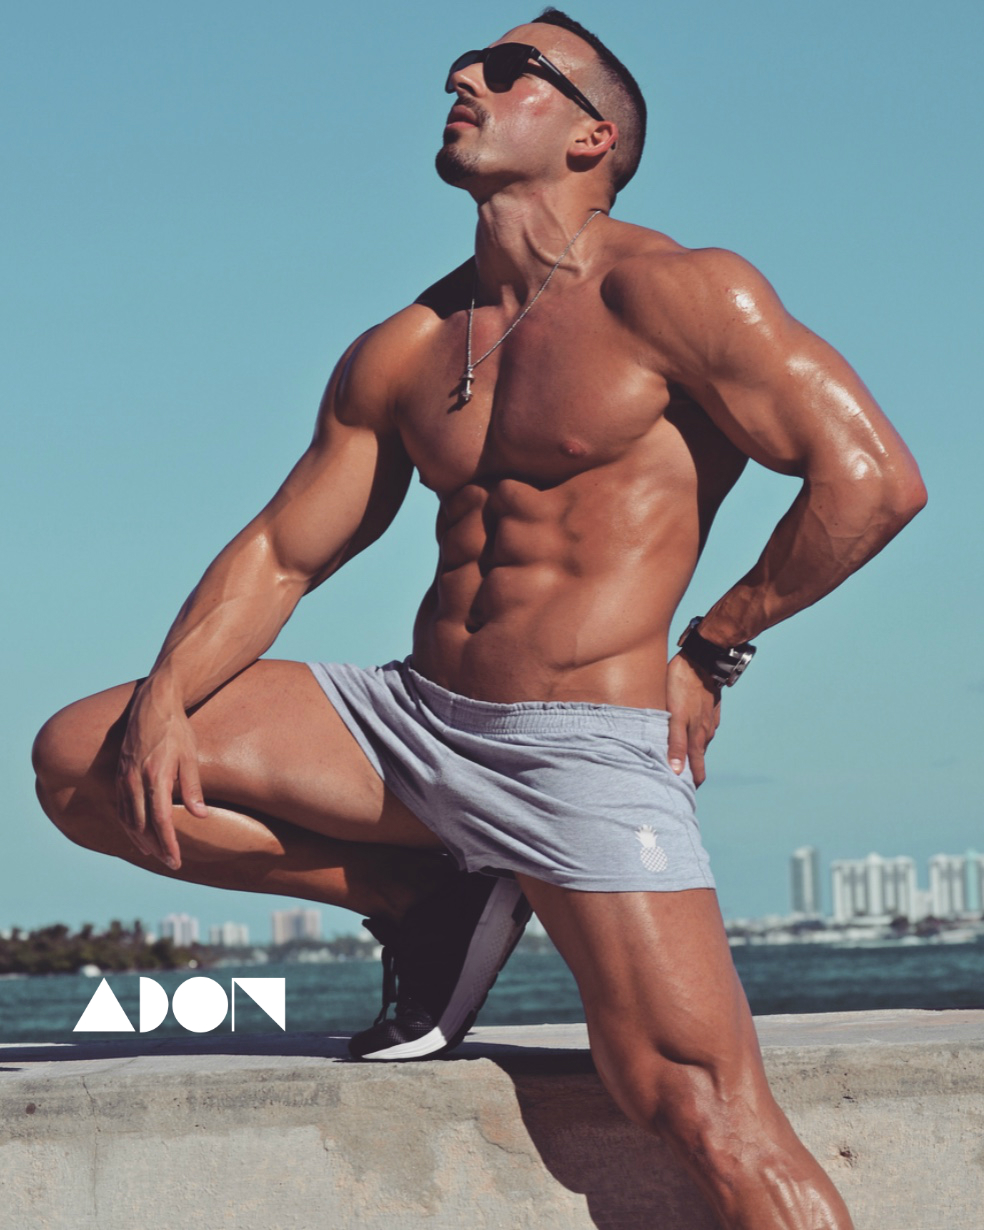 Adon Exclusive: Model Frank Javier By Original As